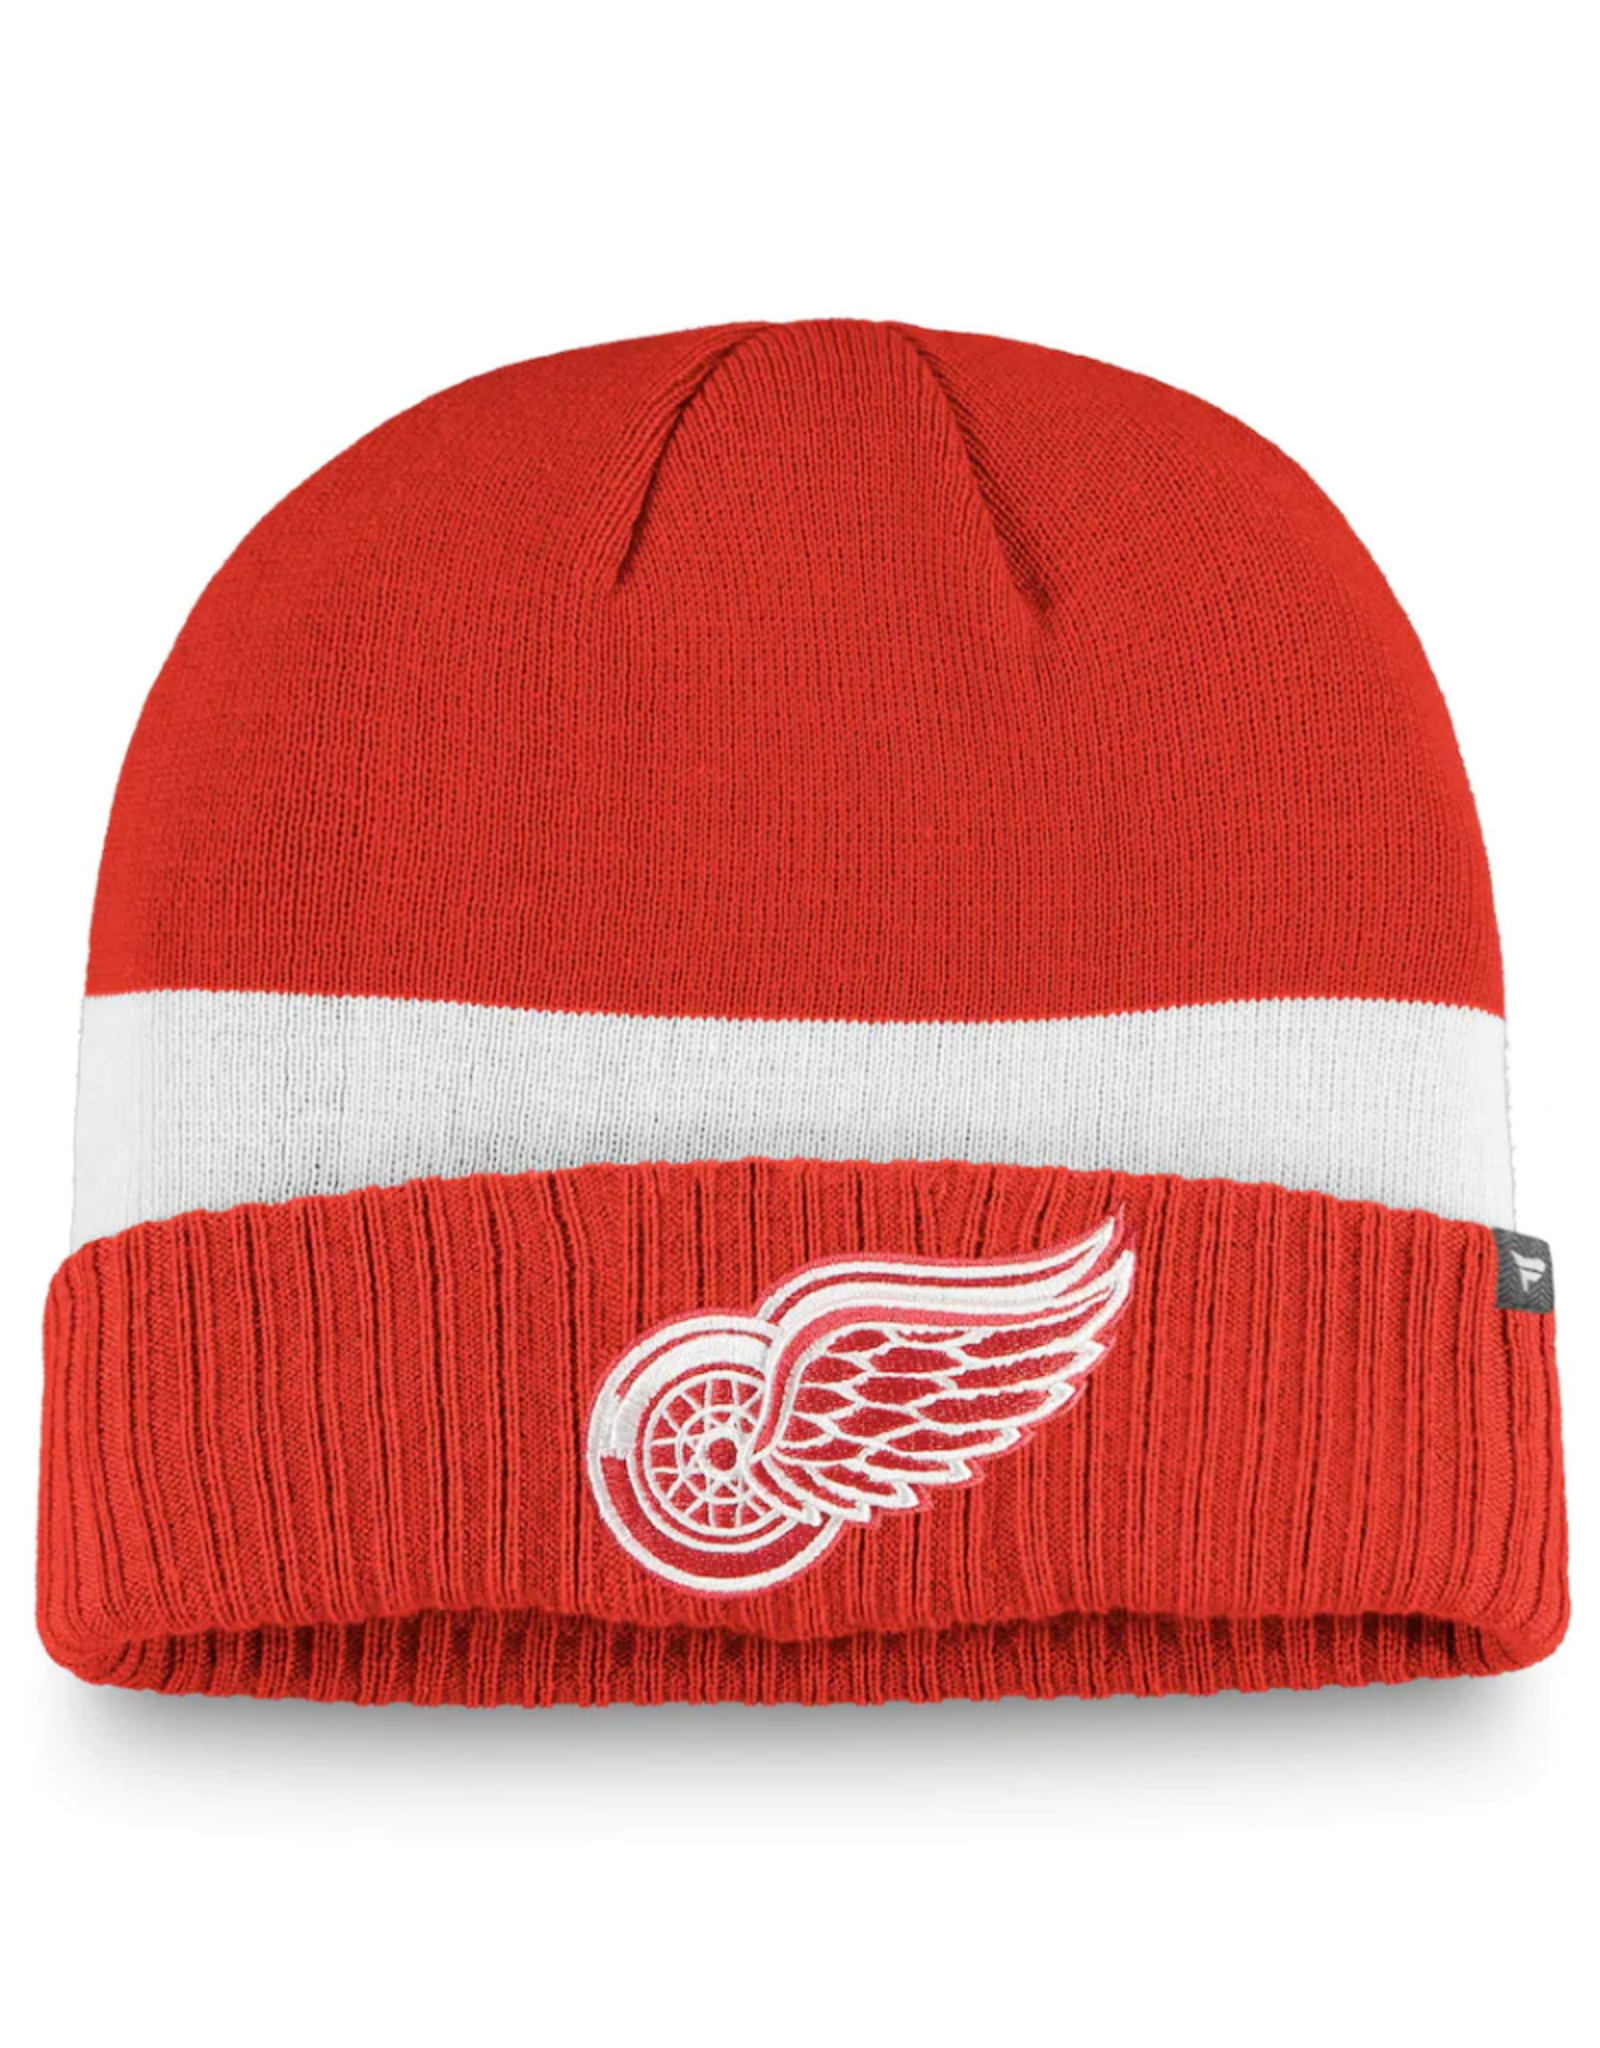 Fanatics Fanatics Adult Alternate Breakaway Beanie Detroit Red Wings